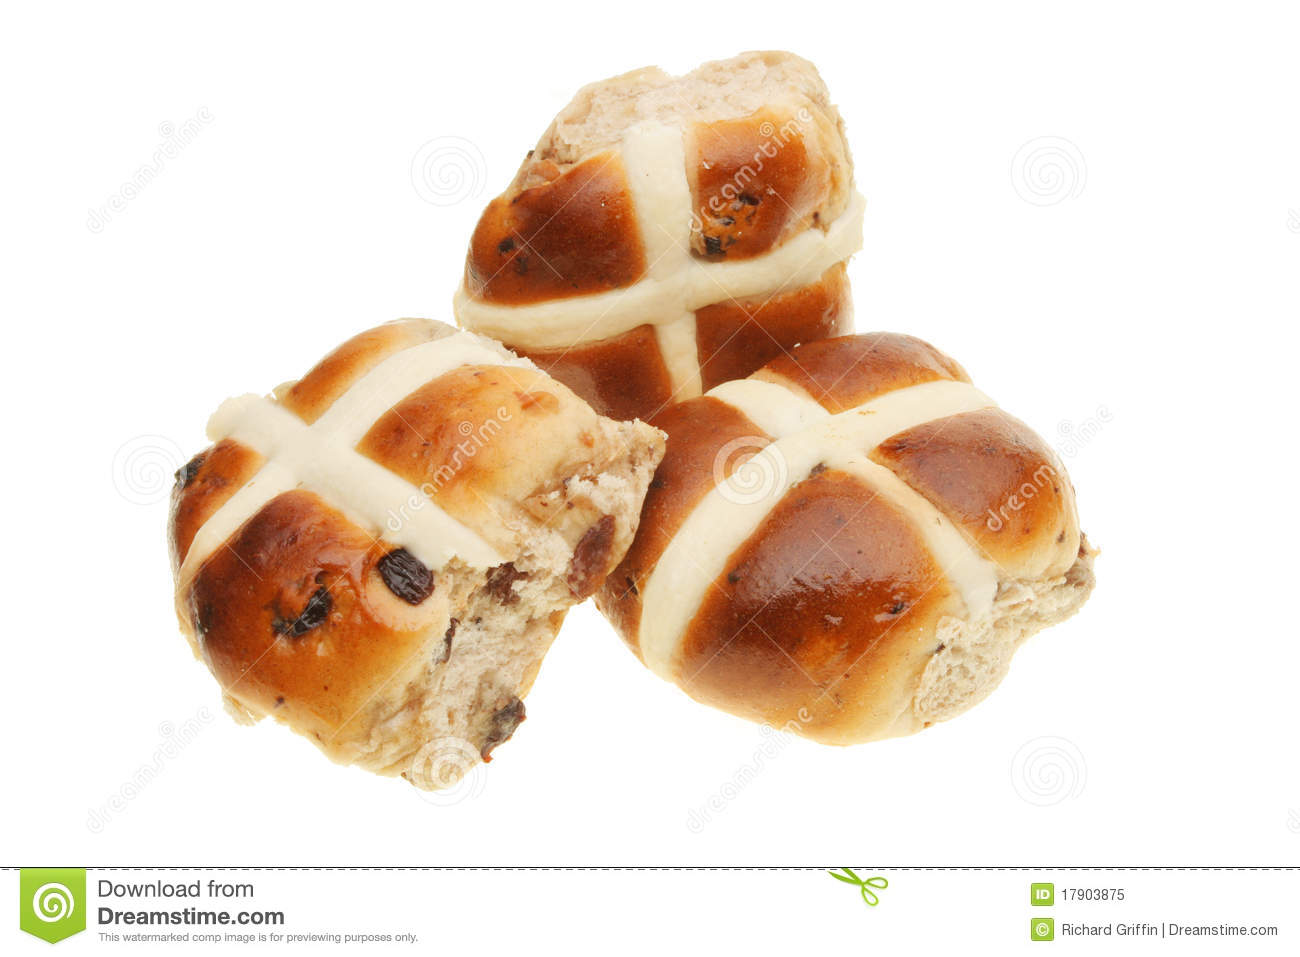 ... buns everything buns smoked rye buns cranberry orange hot cross buns